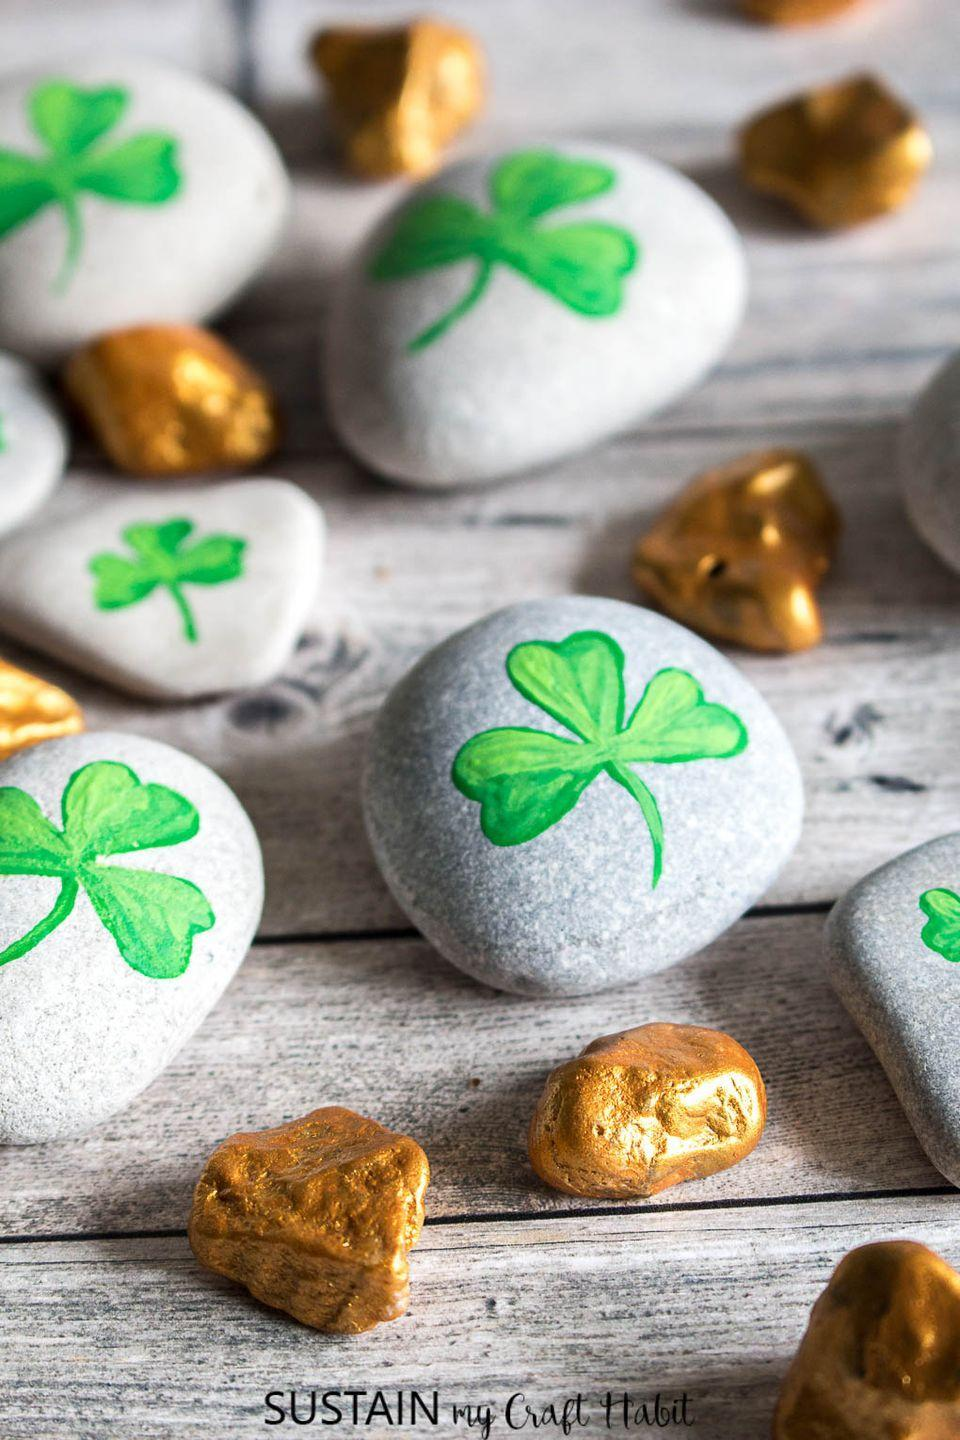 "<p>A perfect look for a tablescape, these painted rocks are also a great craft to do with your kiddos. </p><p><strong>Get the tutorial at <a href=""https://sustainmycrafthabit.com/st-patricks-day-crafts/"" rel=""nofollow noopener"" target=""_blank"" data-ylk=""slk:Sustain My Craft Habit"" class=""link rapid-noclick-resp"">Sustain My Craft Habit</a>.</strong></p><p><a class=""link rapid-noclick-resp"" href=""https://www.amazon.com/s?k=gold+metallic+craft+paint&tag=syn-yahoo-20&ascsubtag=%5Bartid%7C2164.g.35012898%5Bsrc%7Cyahoo-us"" rel=""nofollow noopener"" target=""_blank"" data-ylk=""slk:SHOP GOLD METALLIC PAINT"">SHOP GOLD METALLIC PAINT</a><br></p>"